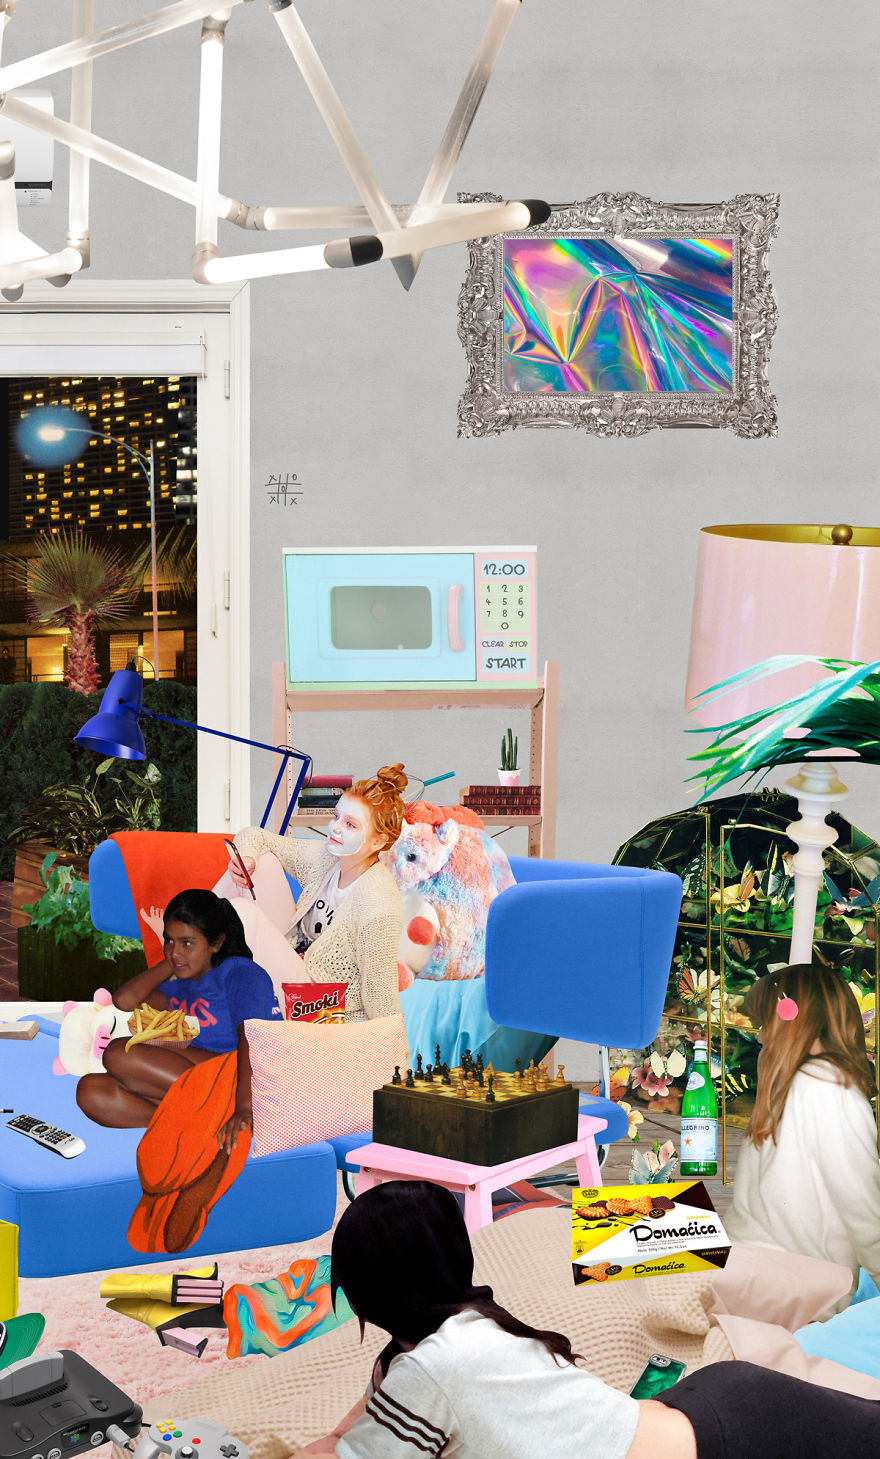 I Spent Two Months Making This 4-story Apartment Collage